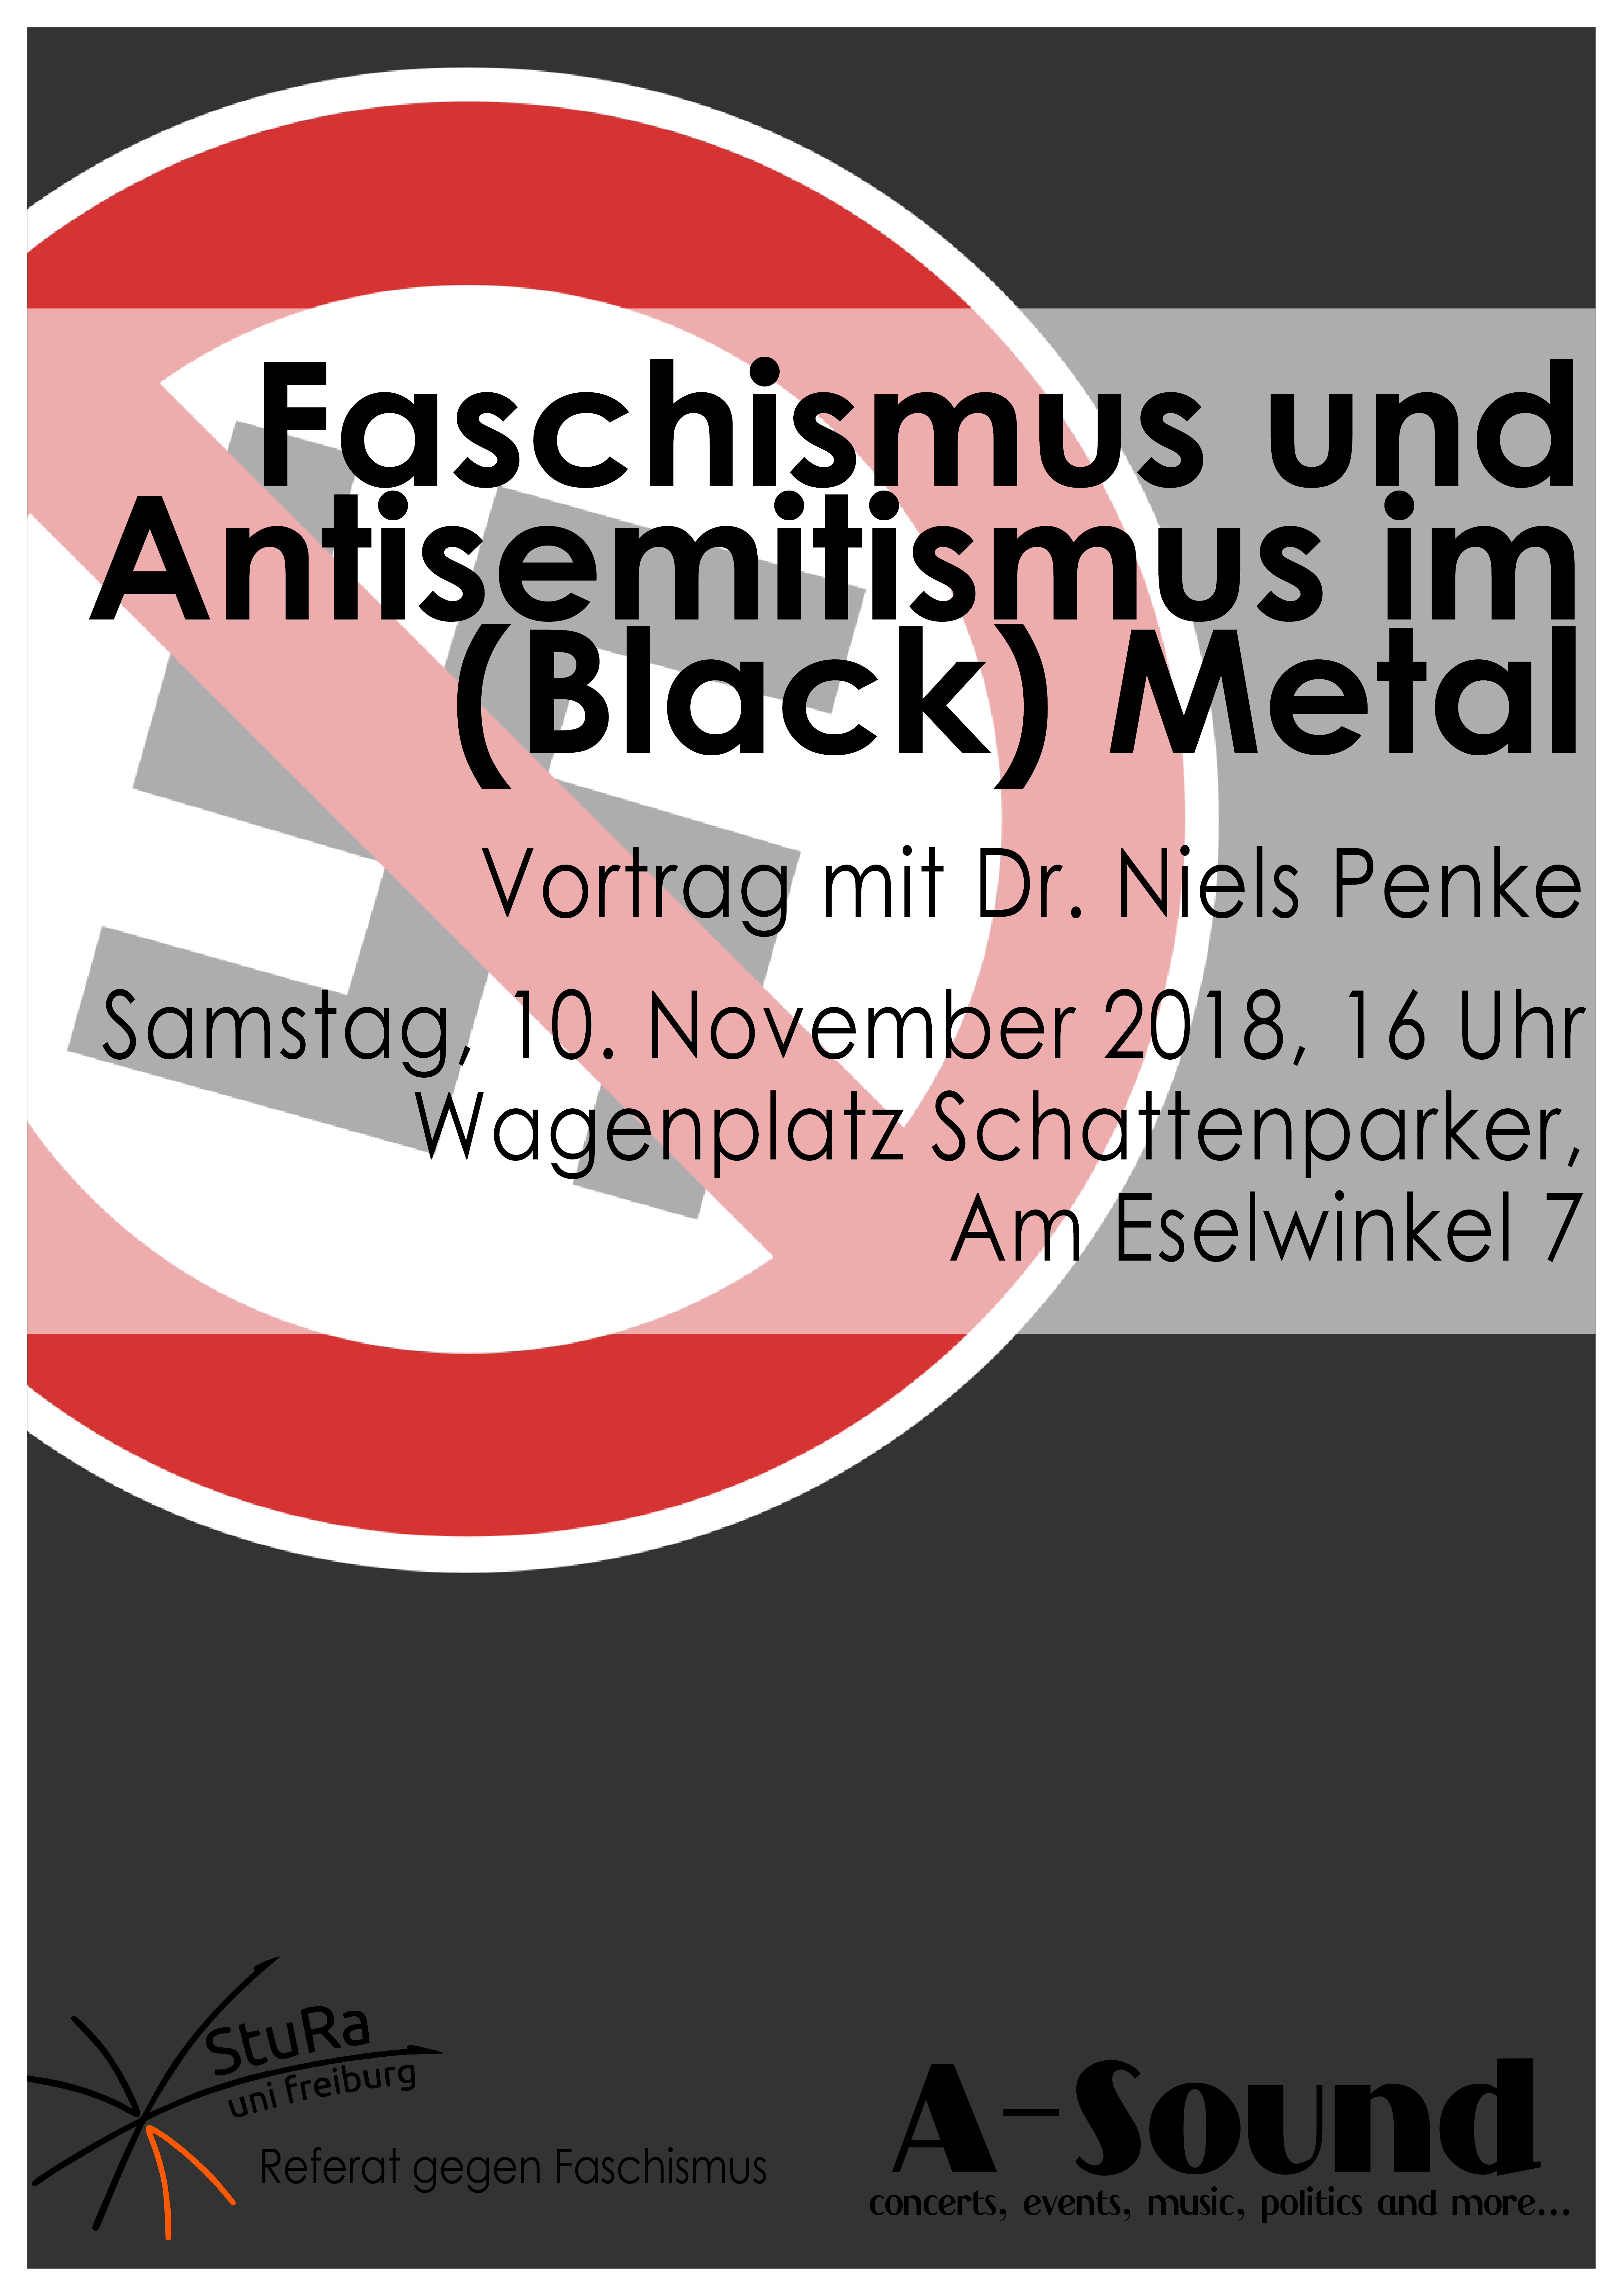 Faschismus und Antisemitismus im (Black) Metal - Plakat - Webversion